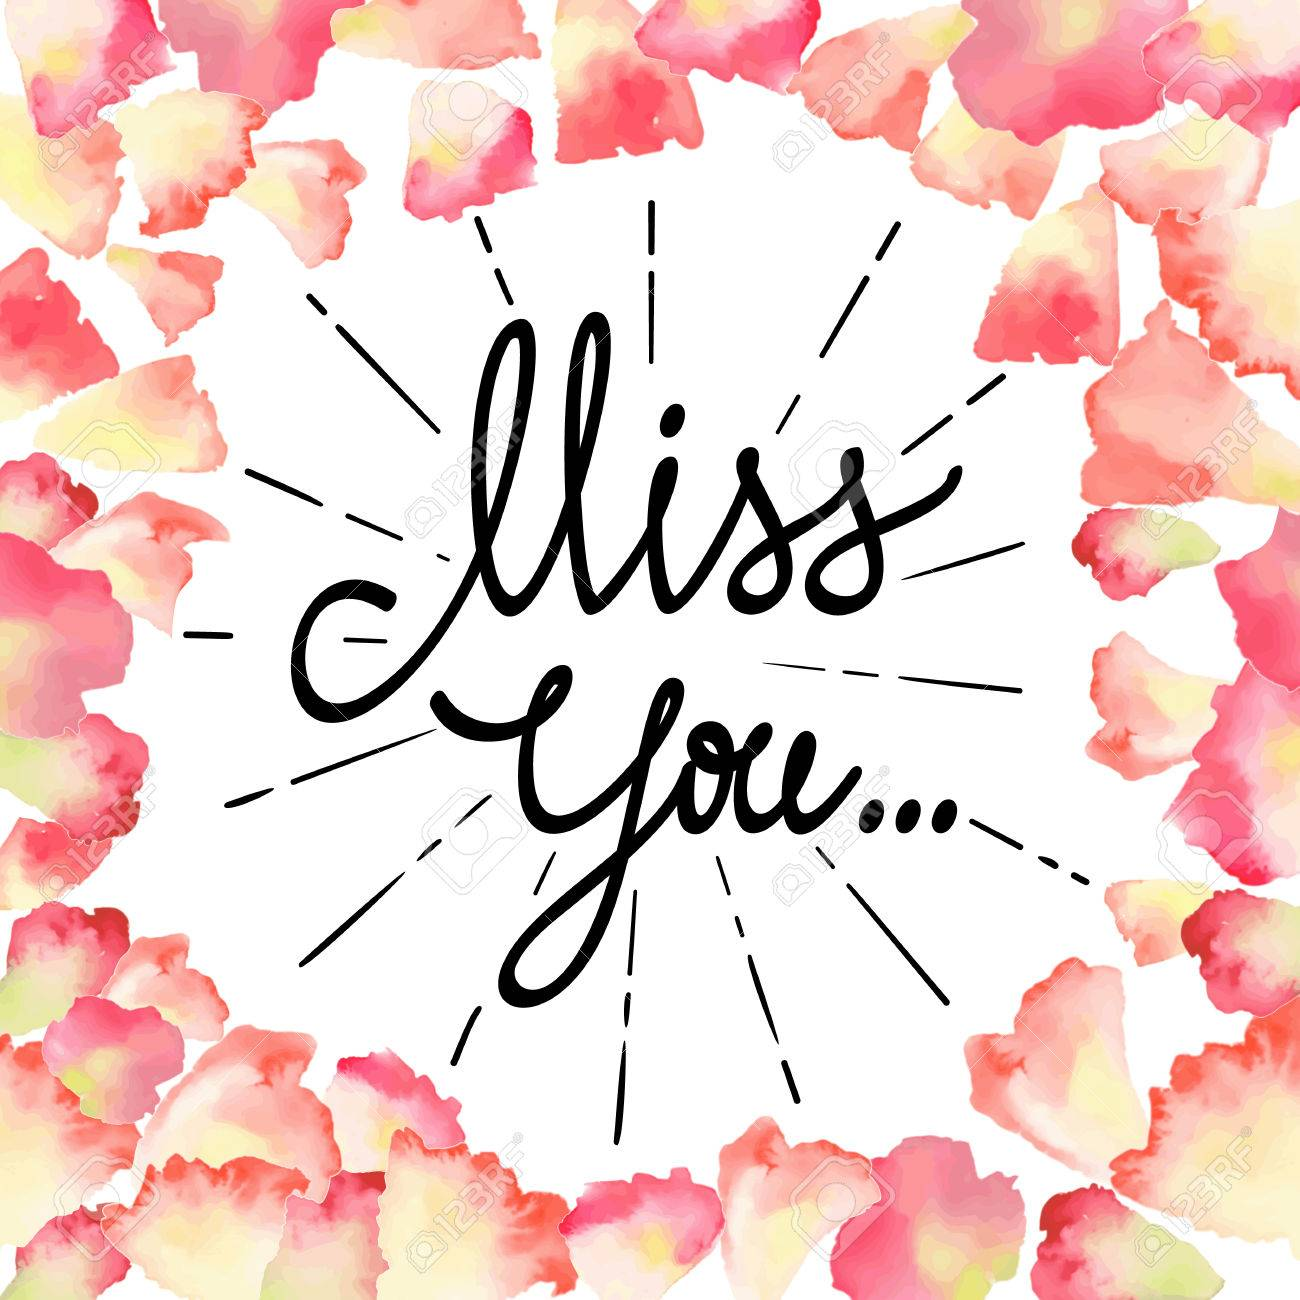 Vintage watercolor greeting card with floral petals miss you vintage watercolor greeting card with floral petals miss you with place for your text kristyandbryce Image collections